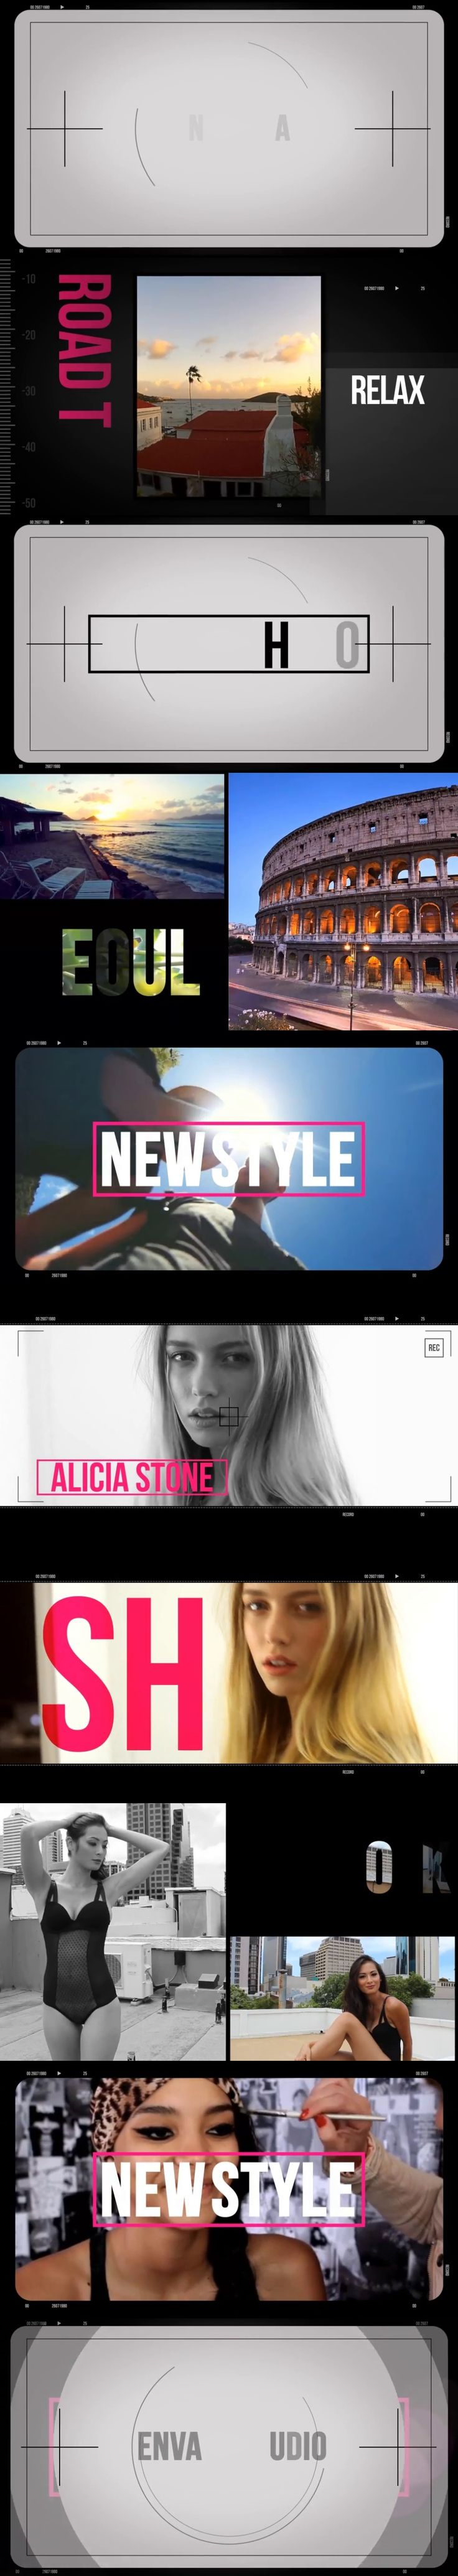 fashion, holiday, model, photo, photography, promo, quick opener, summer, travel, after effects templates    	• You Can Find Font Links in Help File.   • Music In The Preview Is Not included, But You Can Purchase Here:  Fashion Photo  • Videos under Creative Commons license on Vimeo:  https://vimeo.com/50052825 https://vimeo.com/24195442 https://vimeo.com/20596918 https://vimeo.com/57405003 https://vimeo.com/48491593 https://vimeo.com/83092756 https://vimeo.com/17981811 https://vimeo....